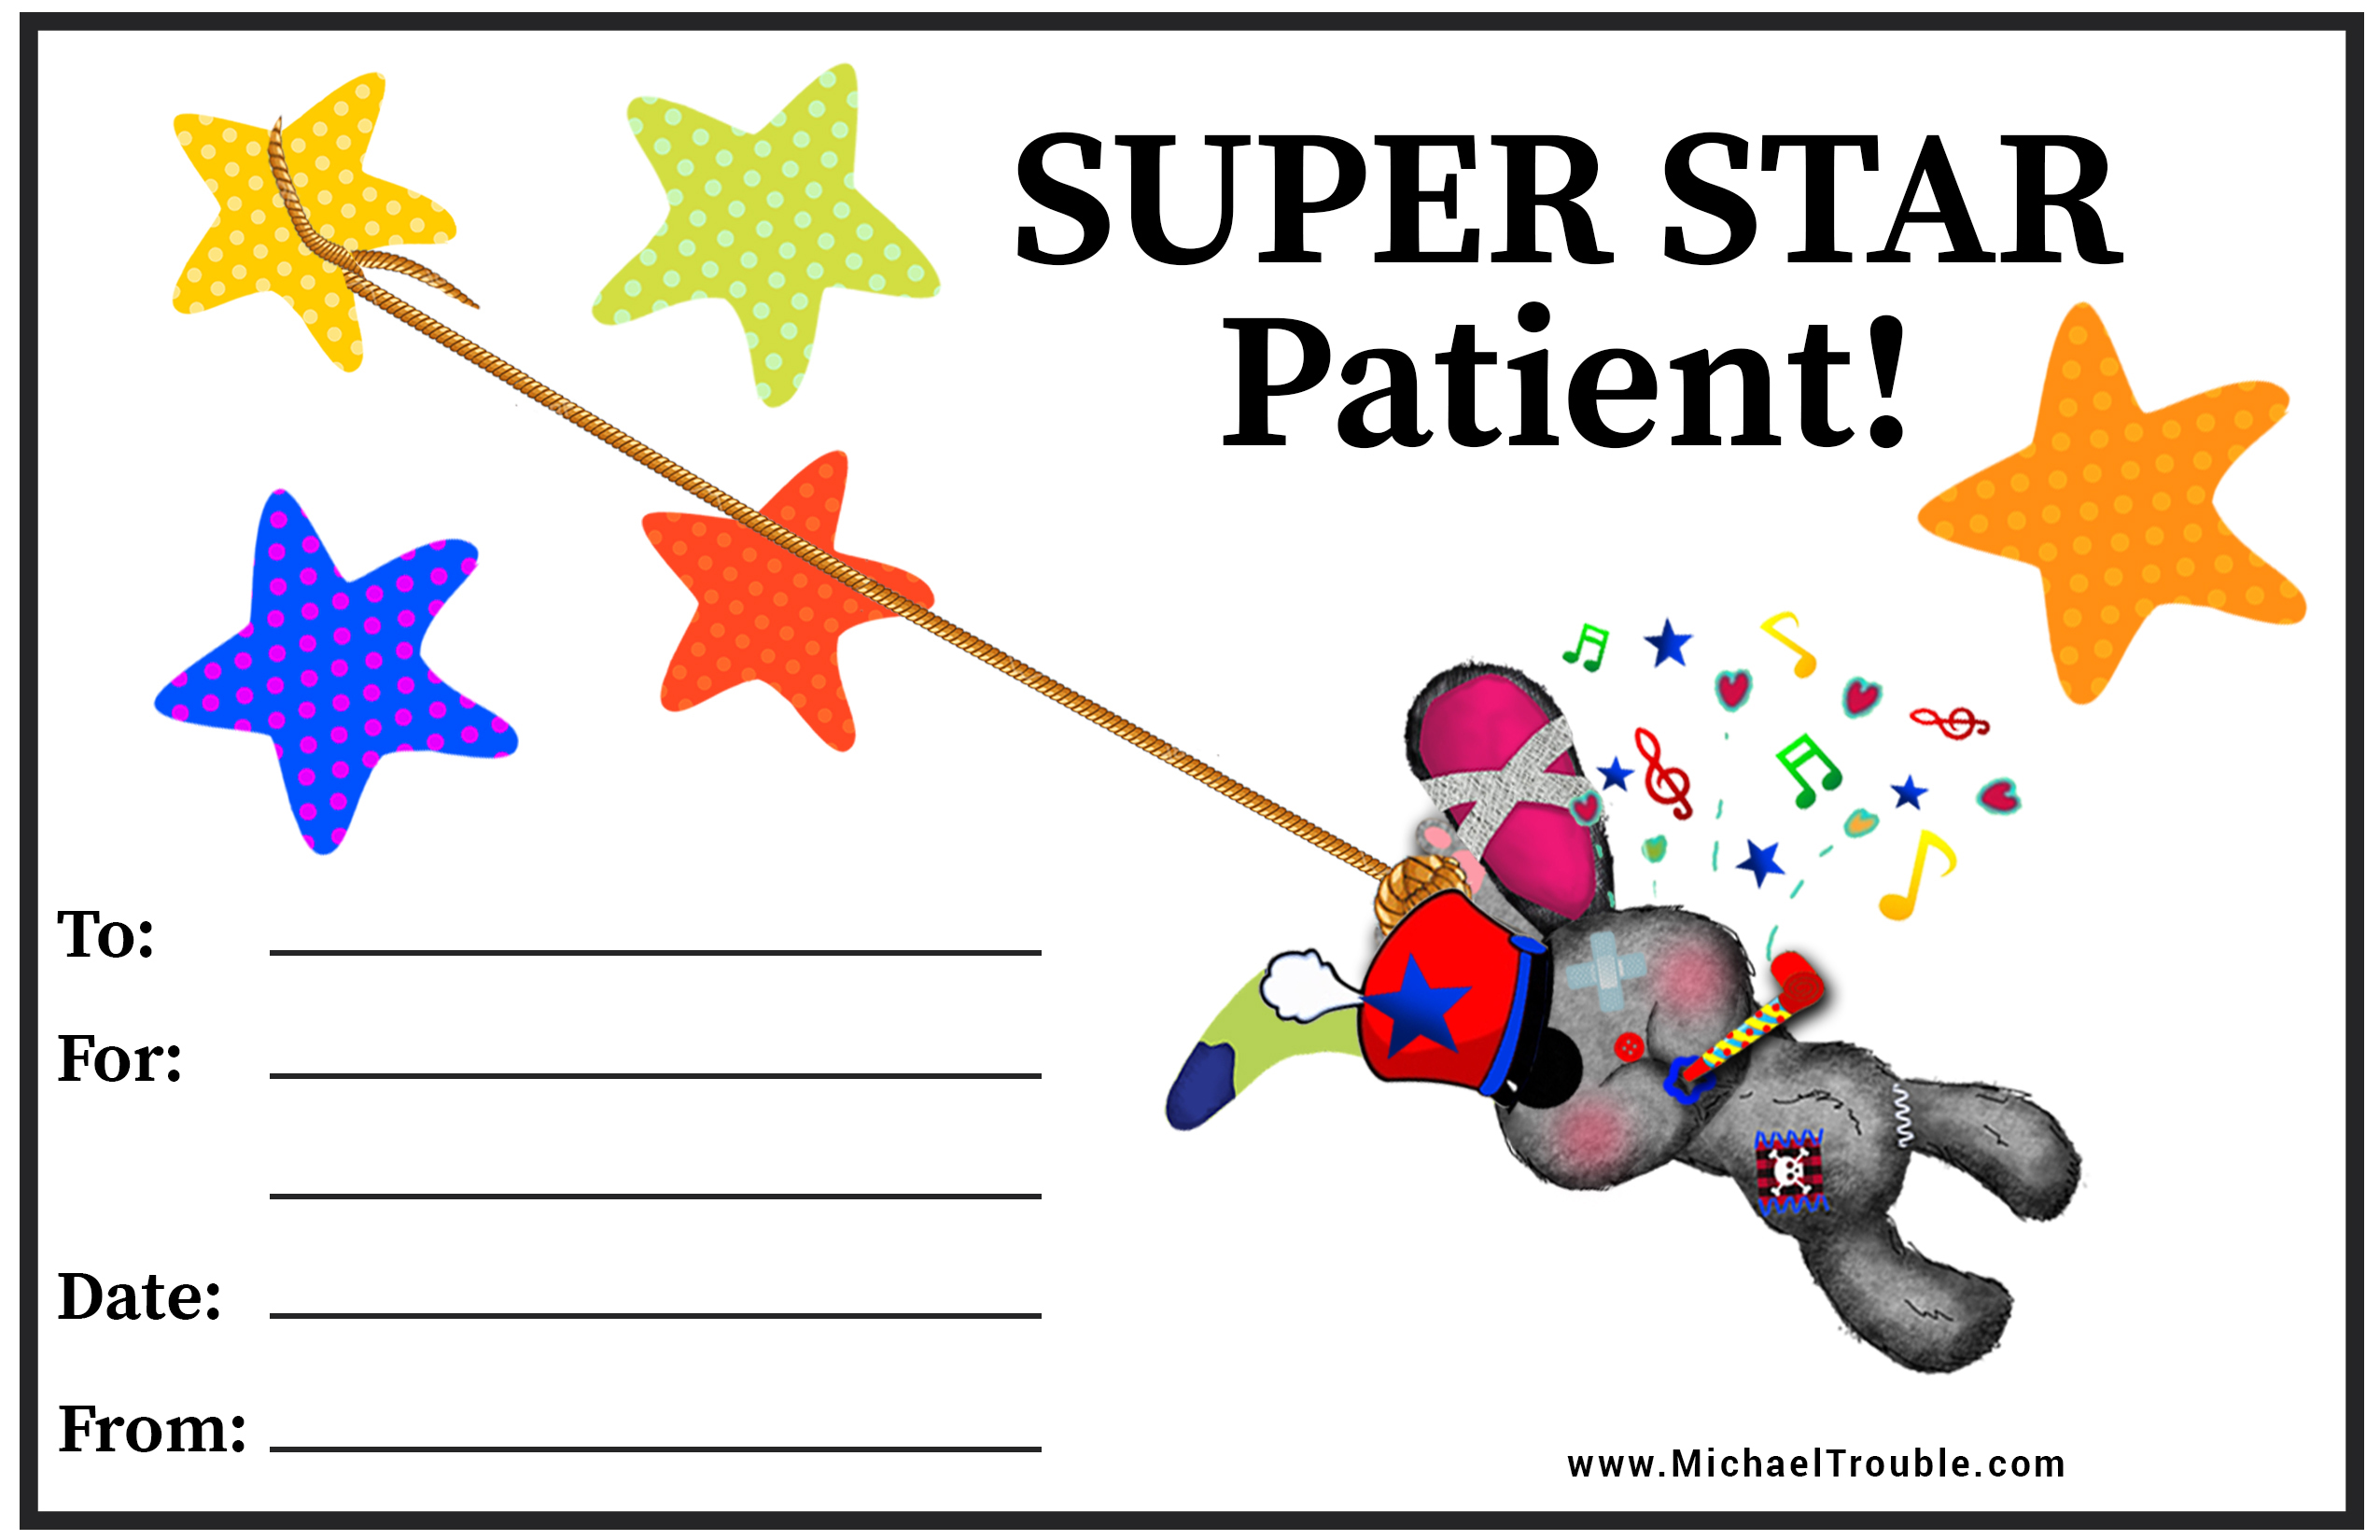 SuperStarPatient_Sally